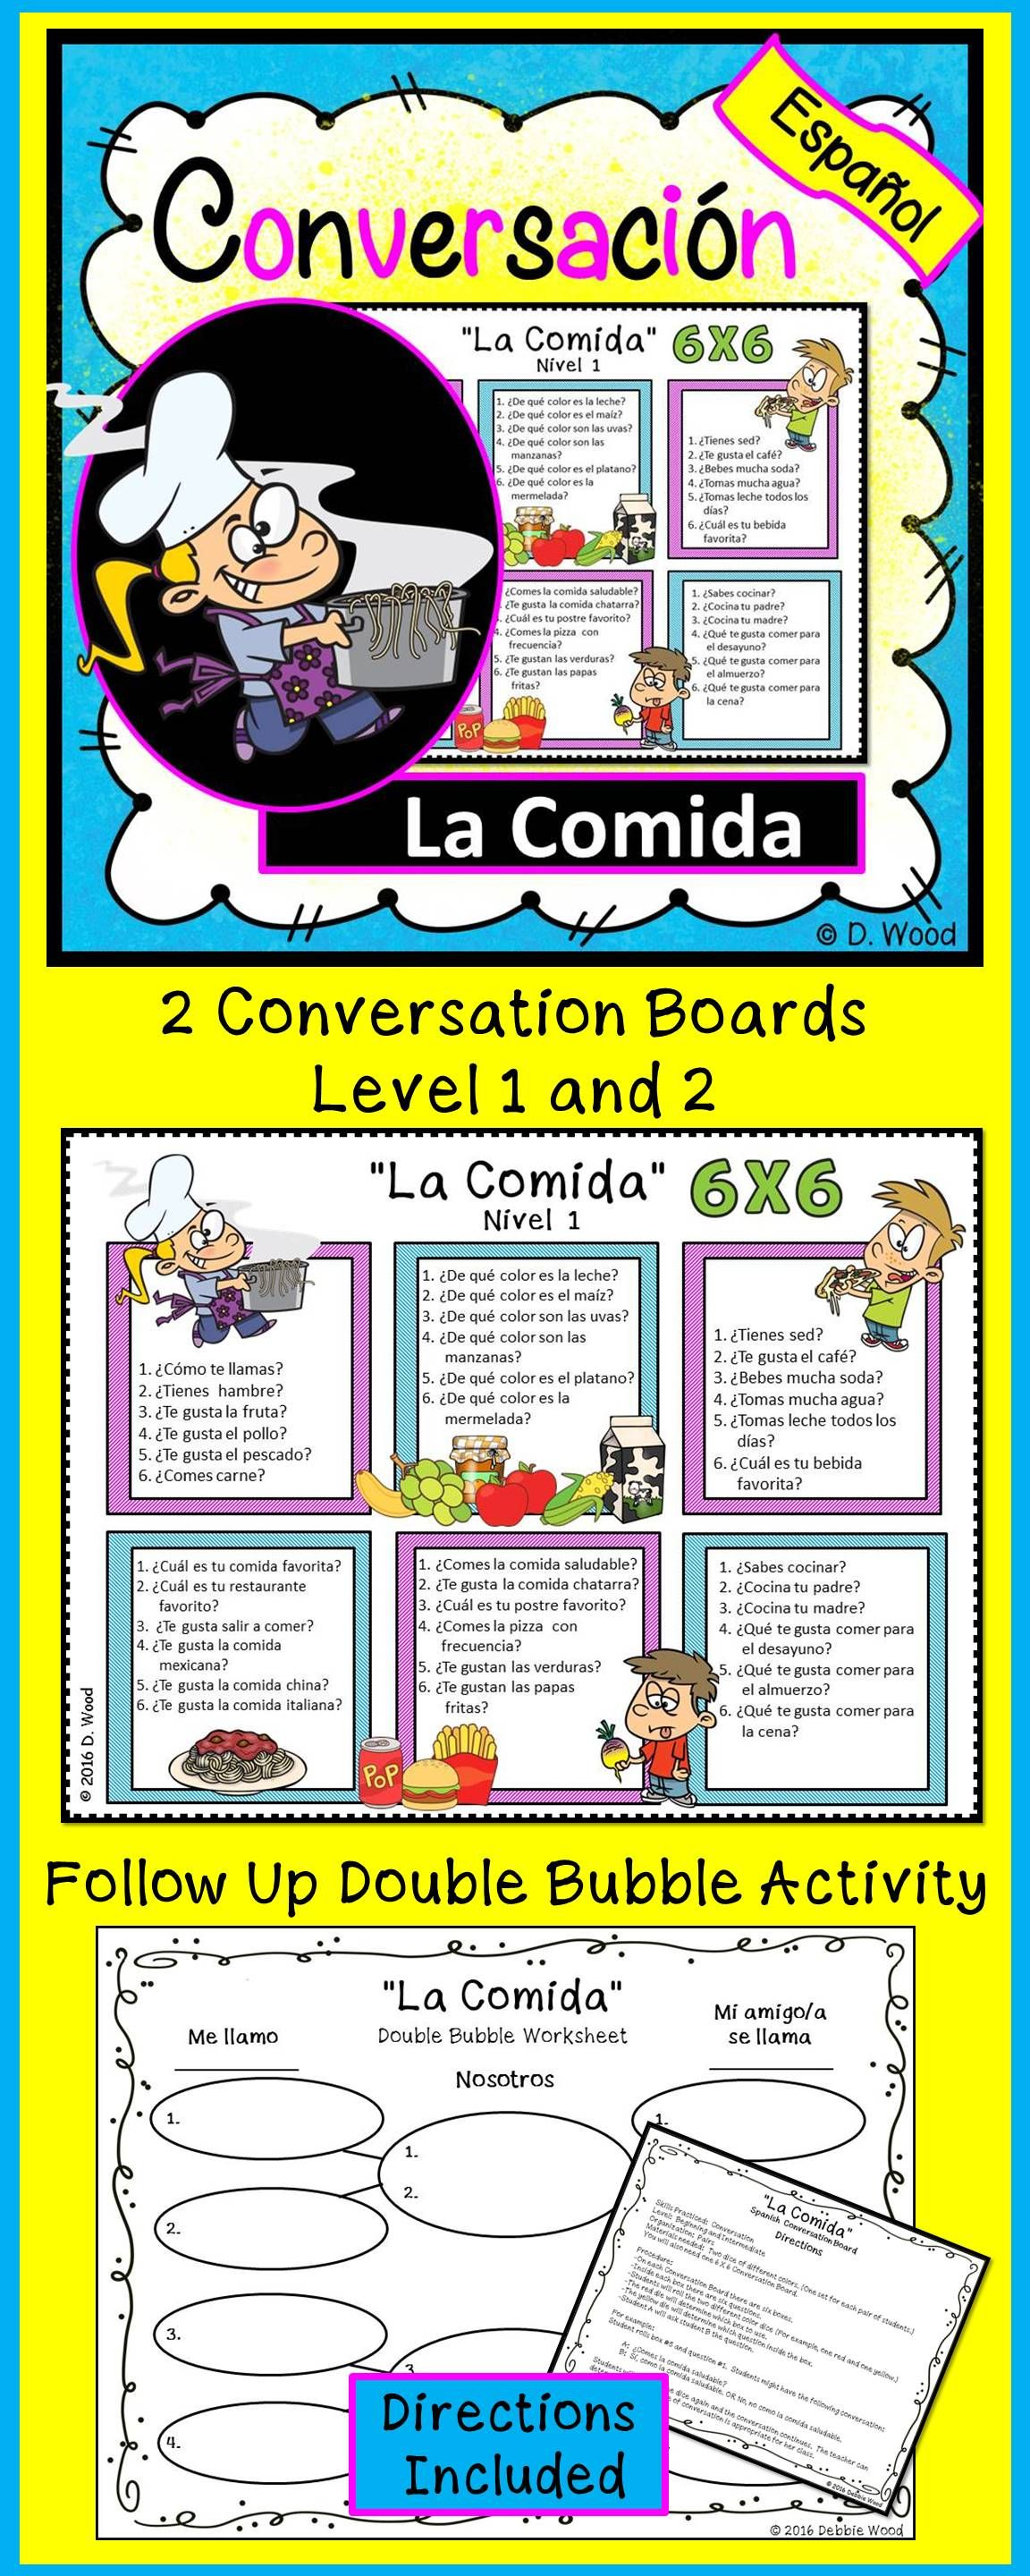 Spanish Conversation Boards On Food A Fun An Engaging Activity For Students To Communicate In Learning Spanish Spanish Conversation Spanish Lessons For Kids